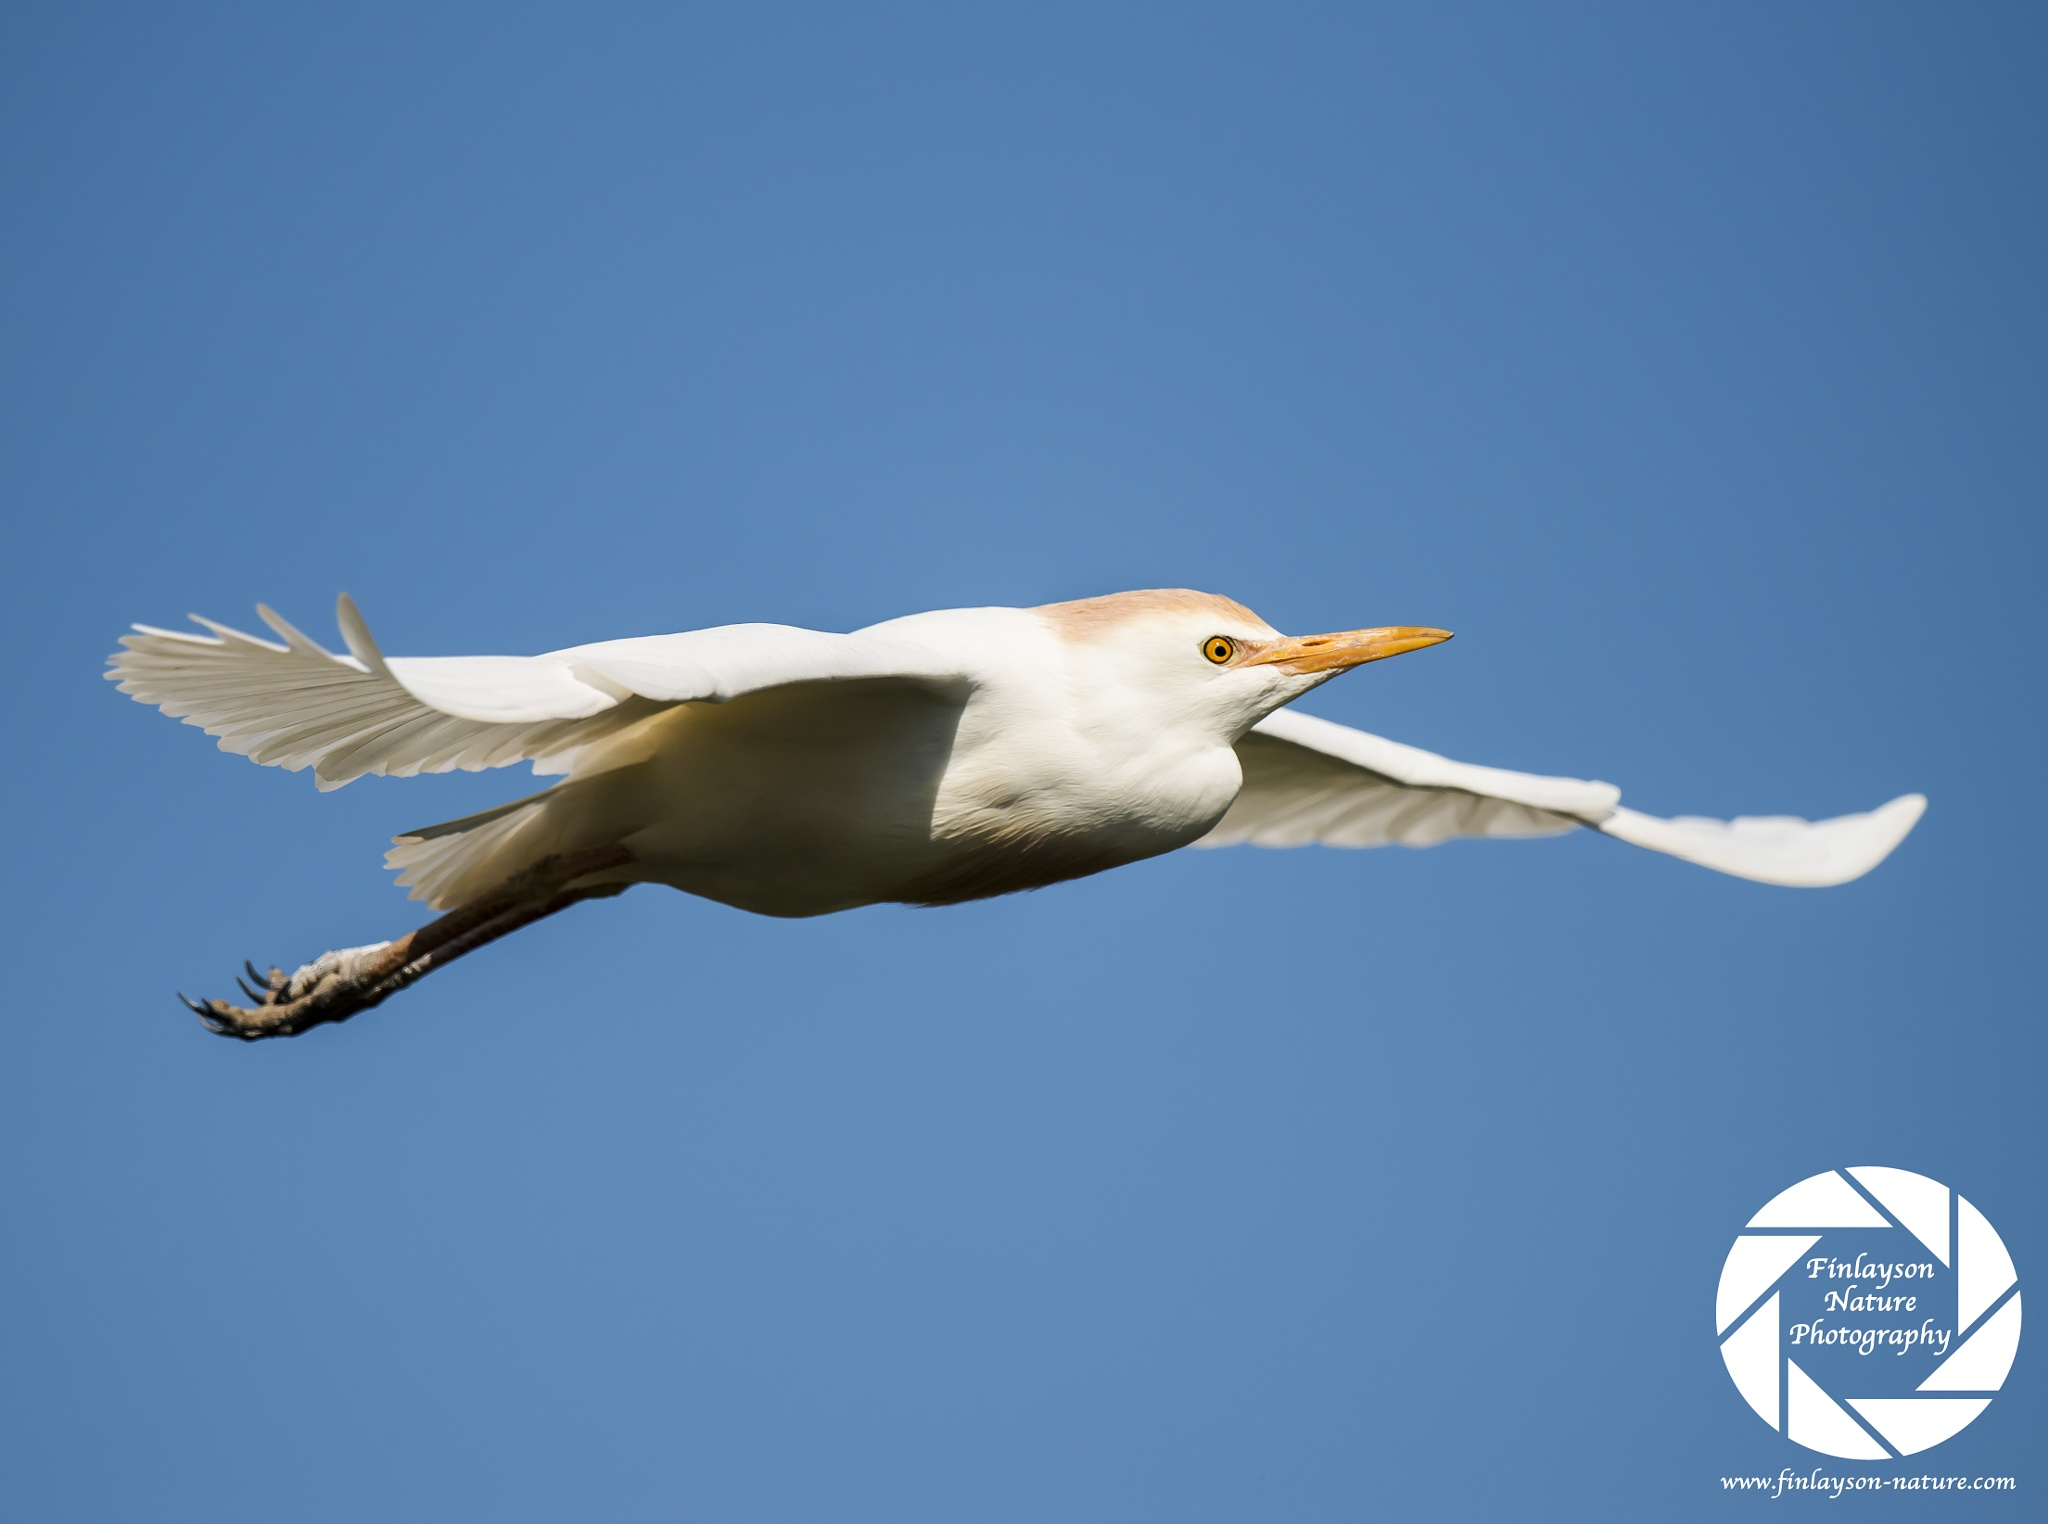 Cattle Egret in flight by Clive Finlayson